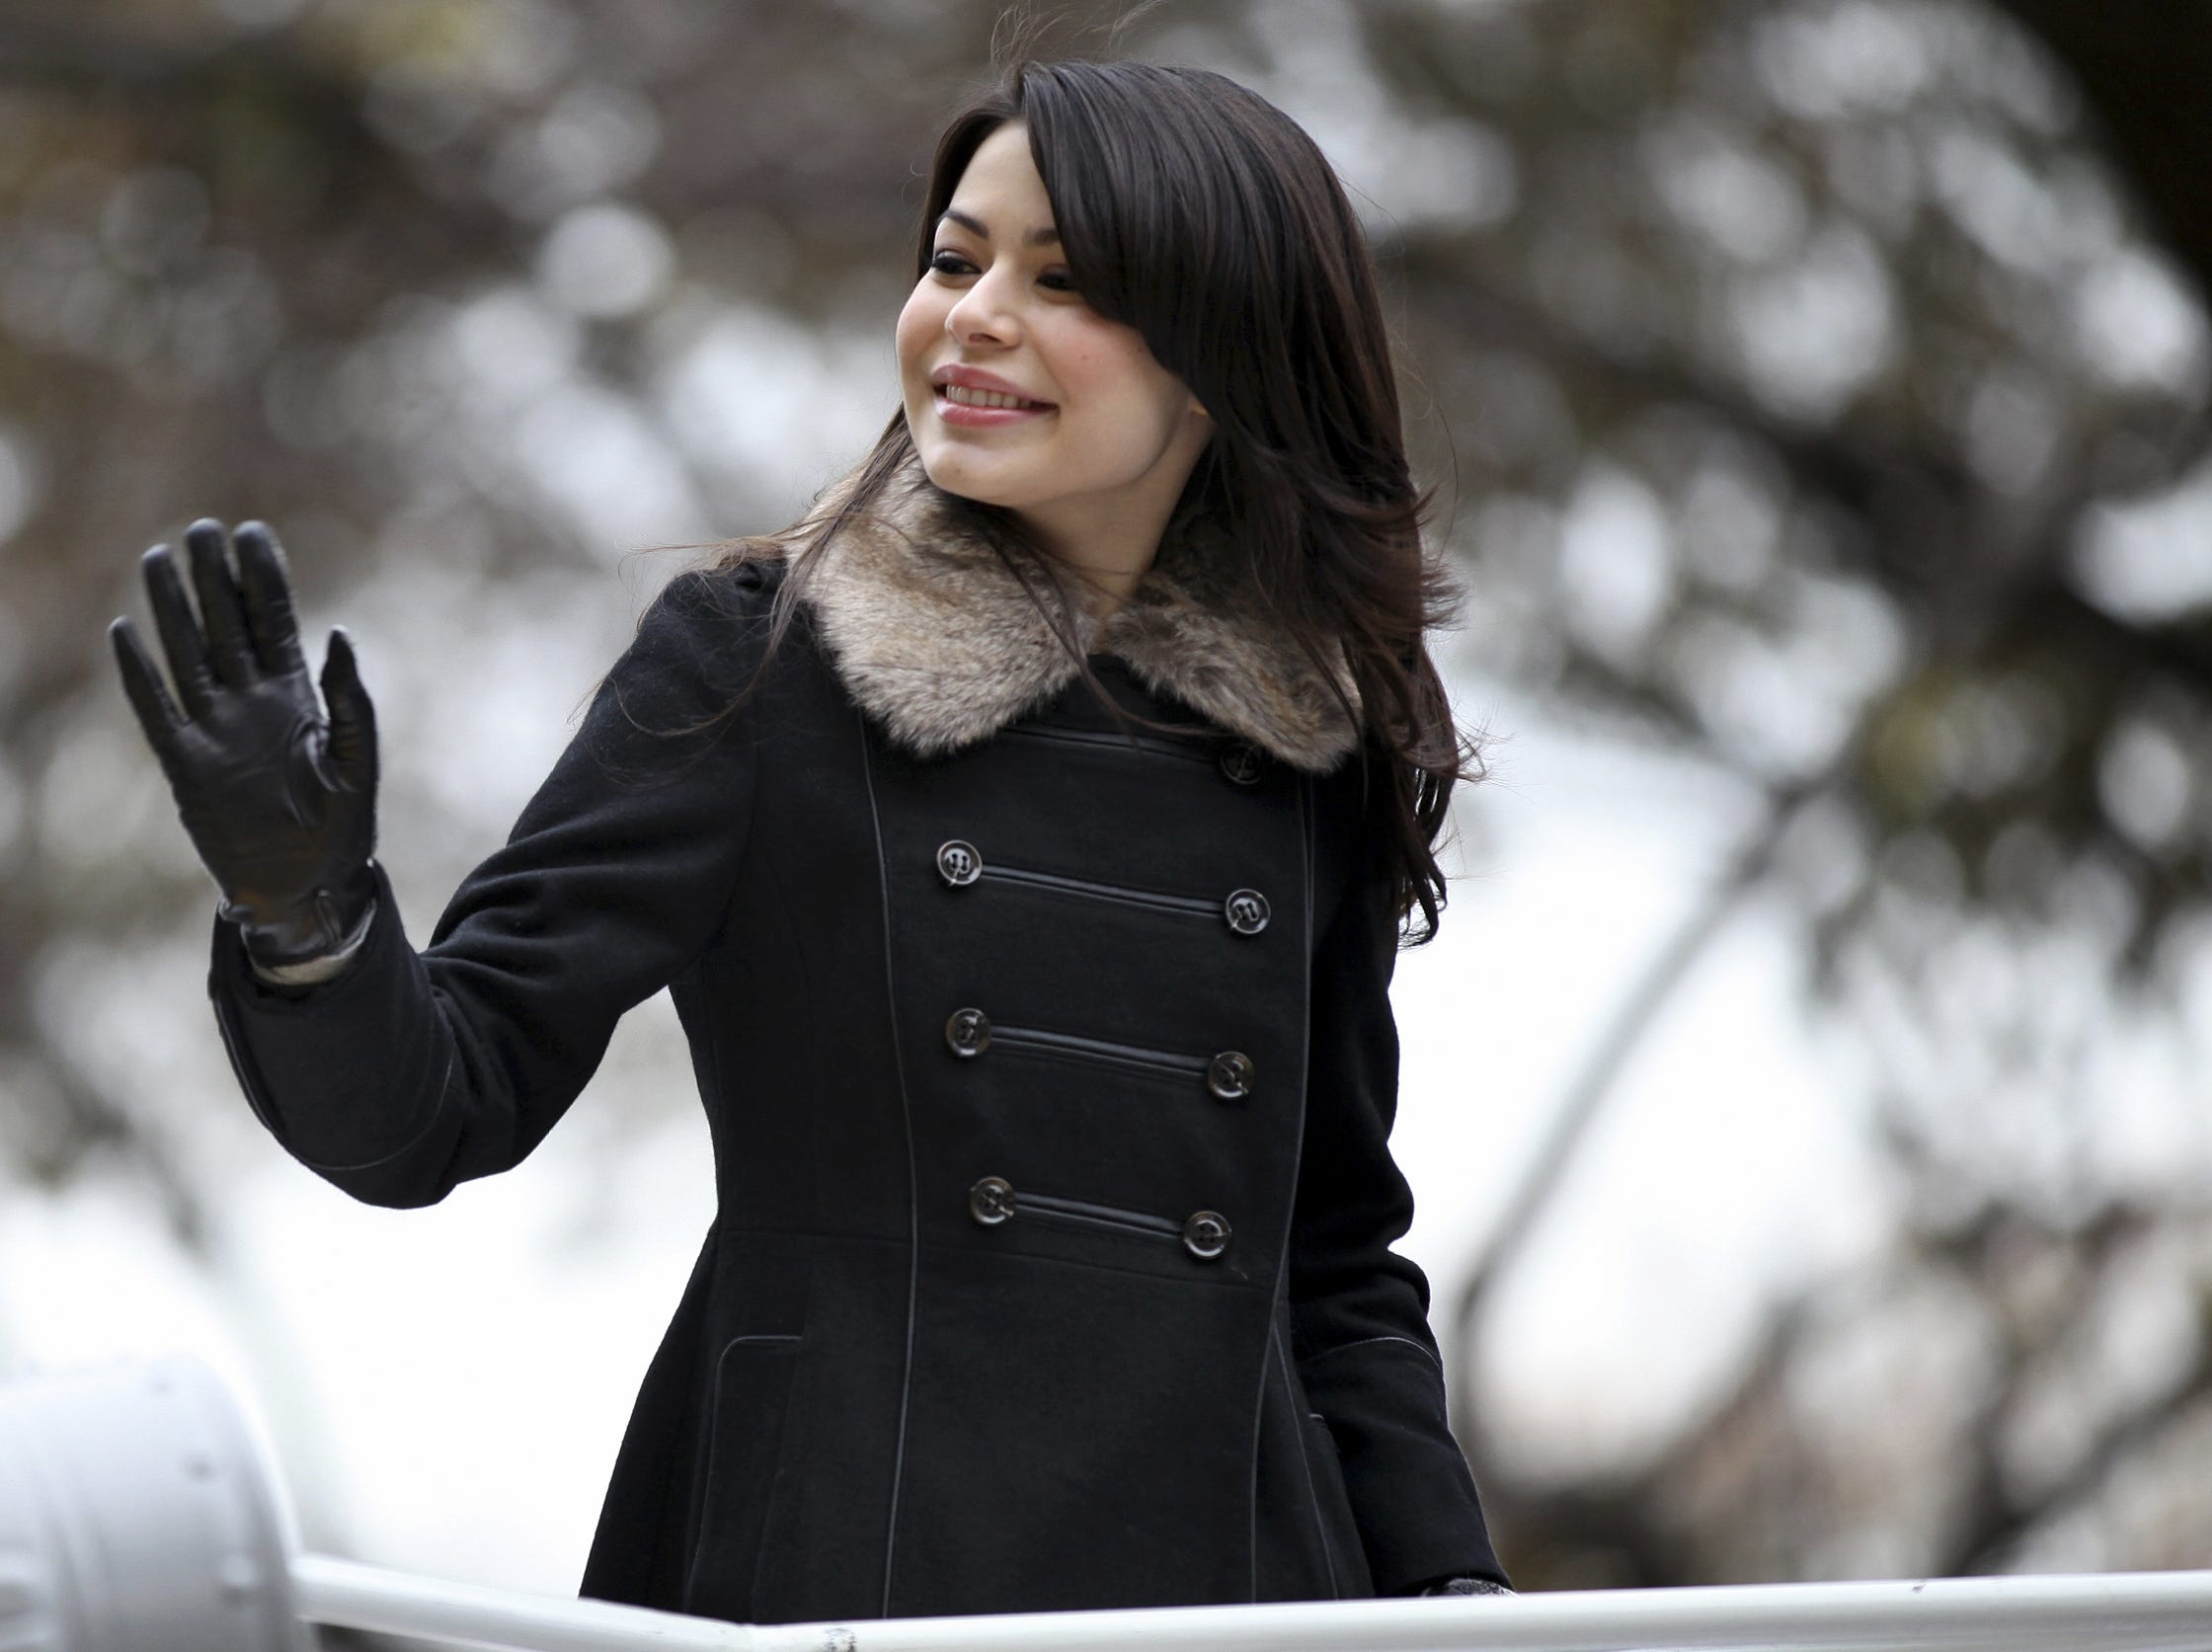 Actress and singer Miranda Cosgrove waves as she rides by on a float during the Macy's Thanksgiving Day Parade in New York Thursday, Nov. 25, 2010.  (AP Photo/Craig Ruttle)